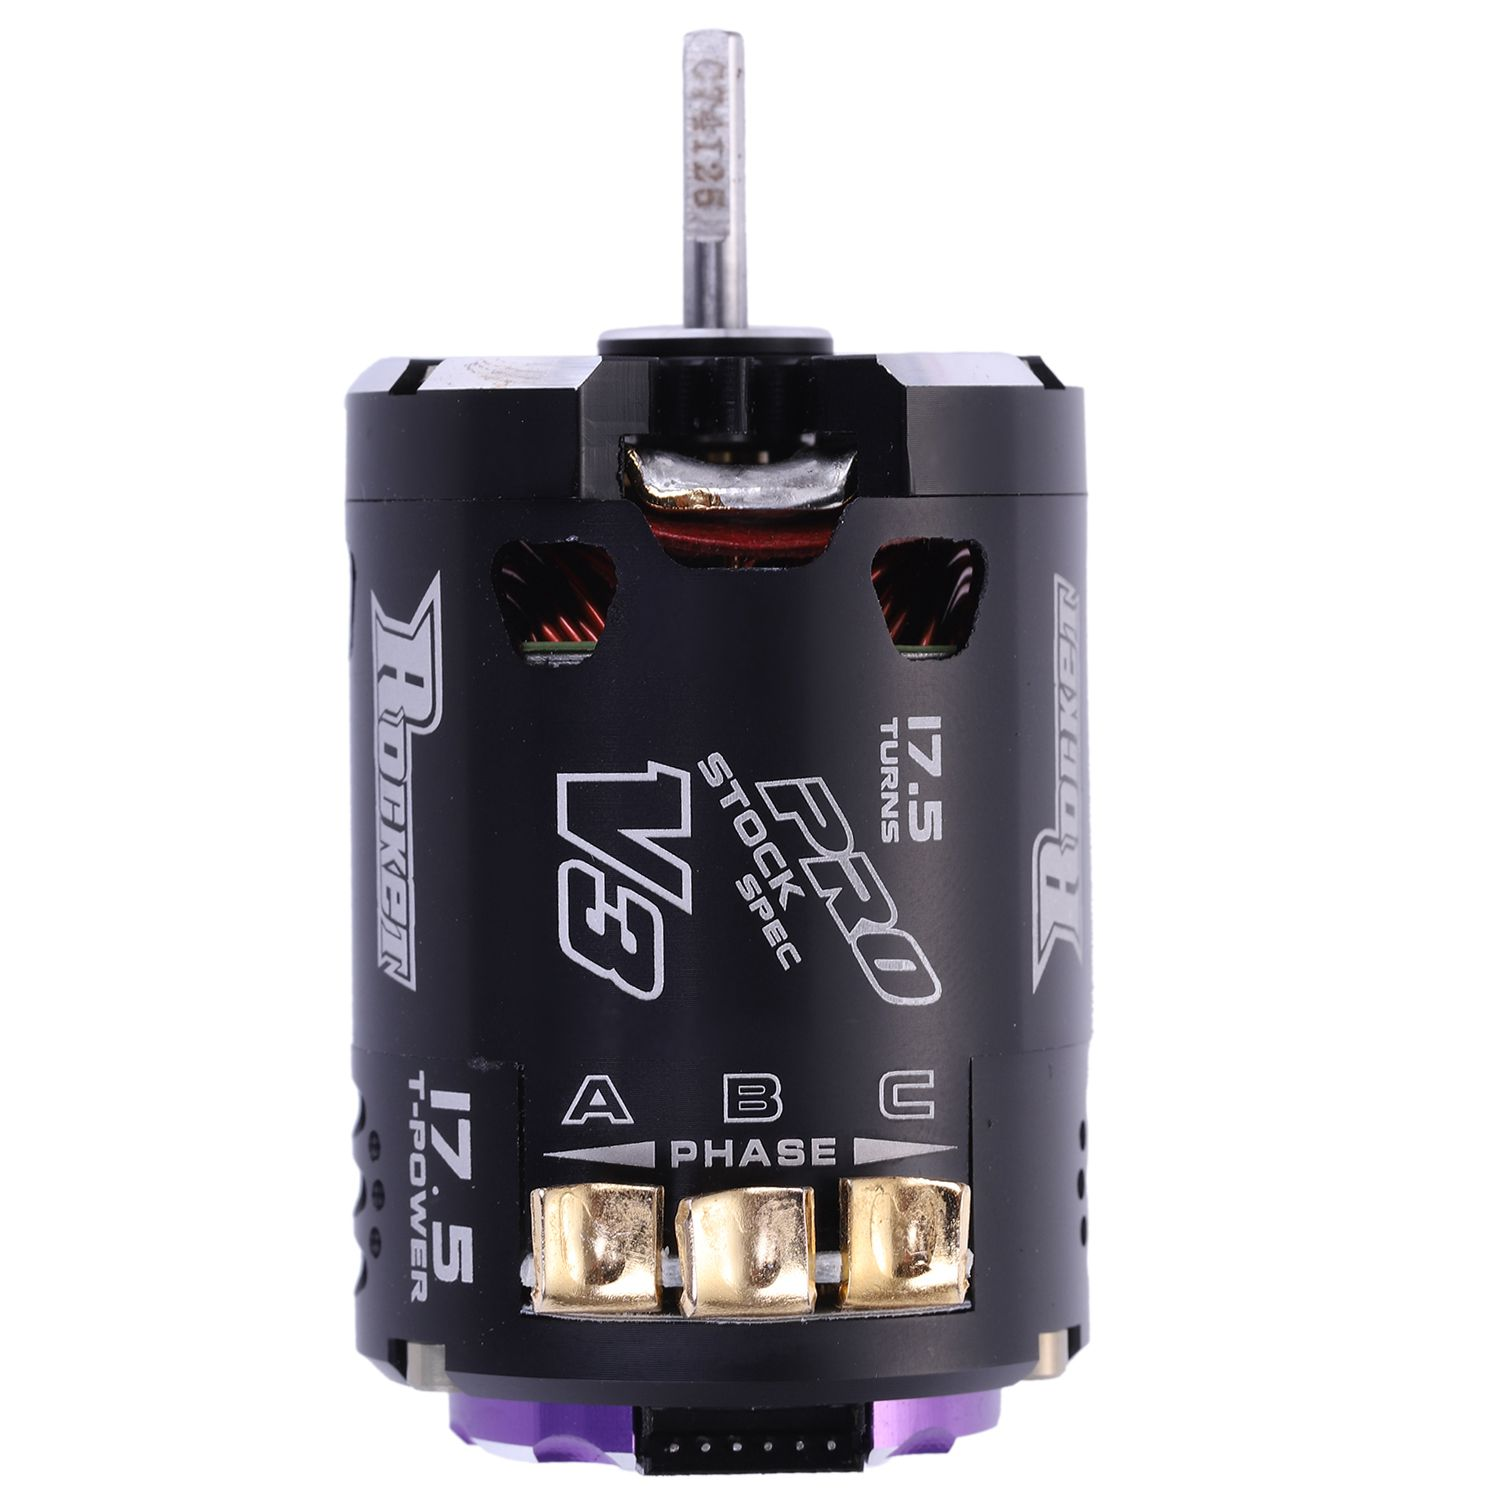 SURPASS HOBBY V3 540 17.5T Sensored SPEC RC Brushless Motor for 1/10 RC Racing Car Truck RC Car Parts Accessories Purple black цена